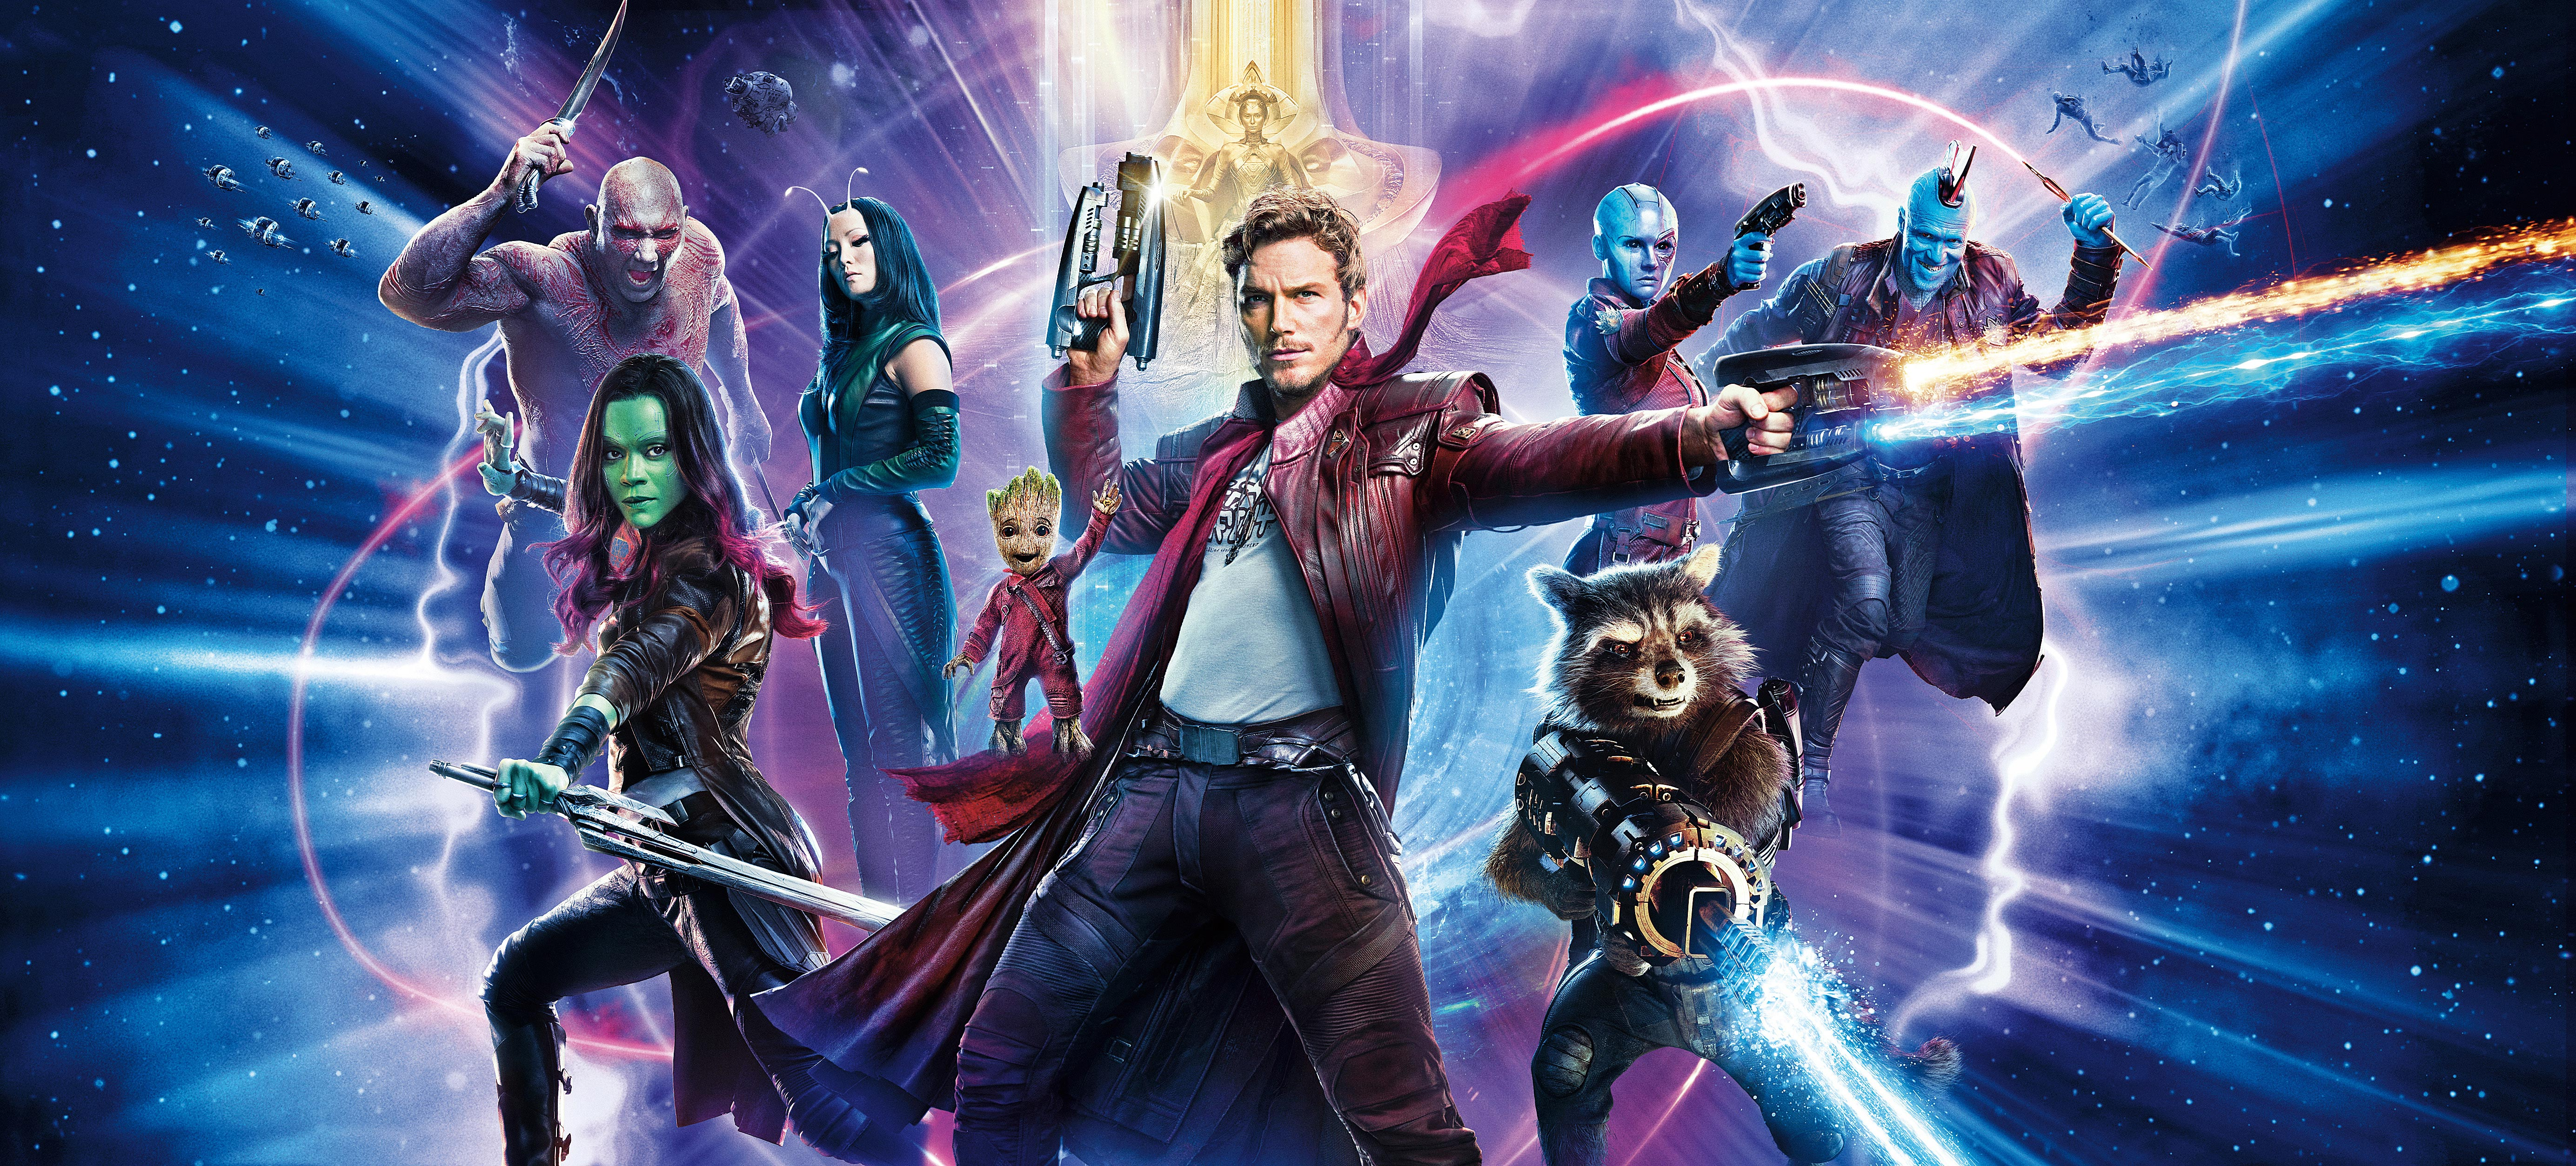 Guardians Of The Galaxy Hd Wallpaper: Guardians Of The Galaxy Volume 2 5k, HD Movies, 4k